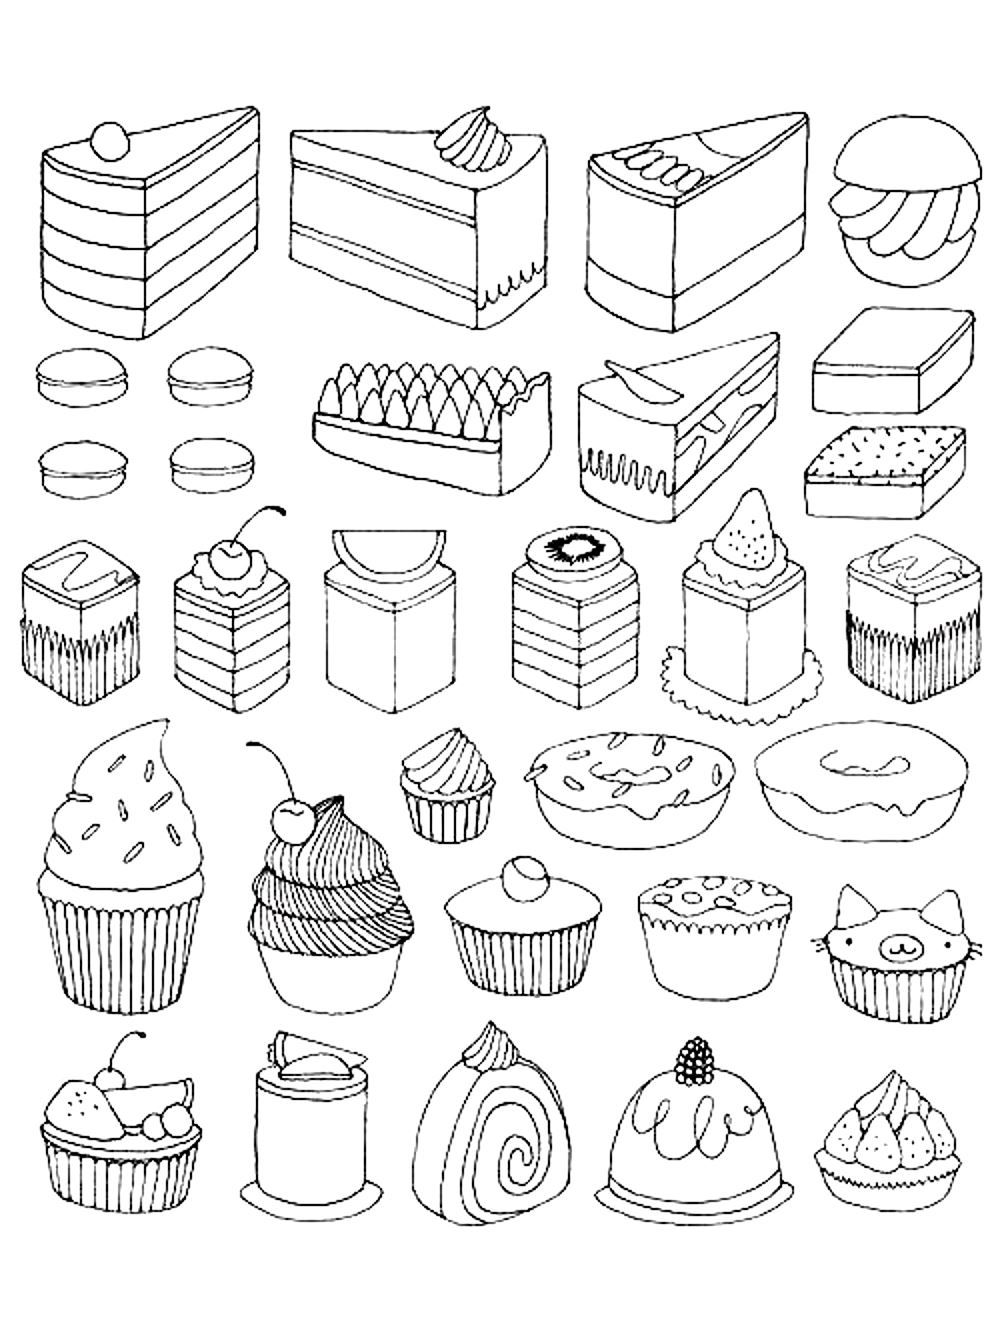 Adults and coloring books - Coloring Adult Cupcakes And Little Cakes Coloring Pages Printable And Coloring Book To Print For Free Find More Coloring Pages Online For Kids And Adults